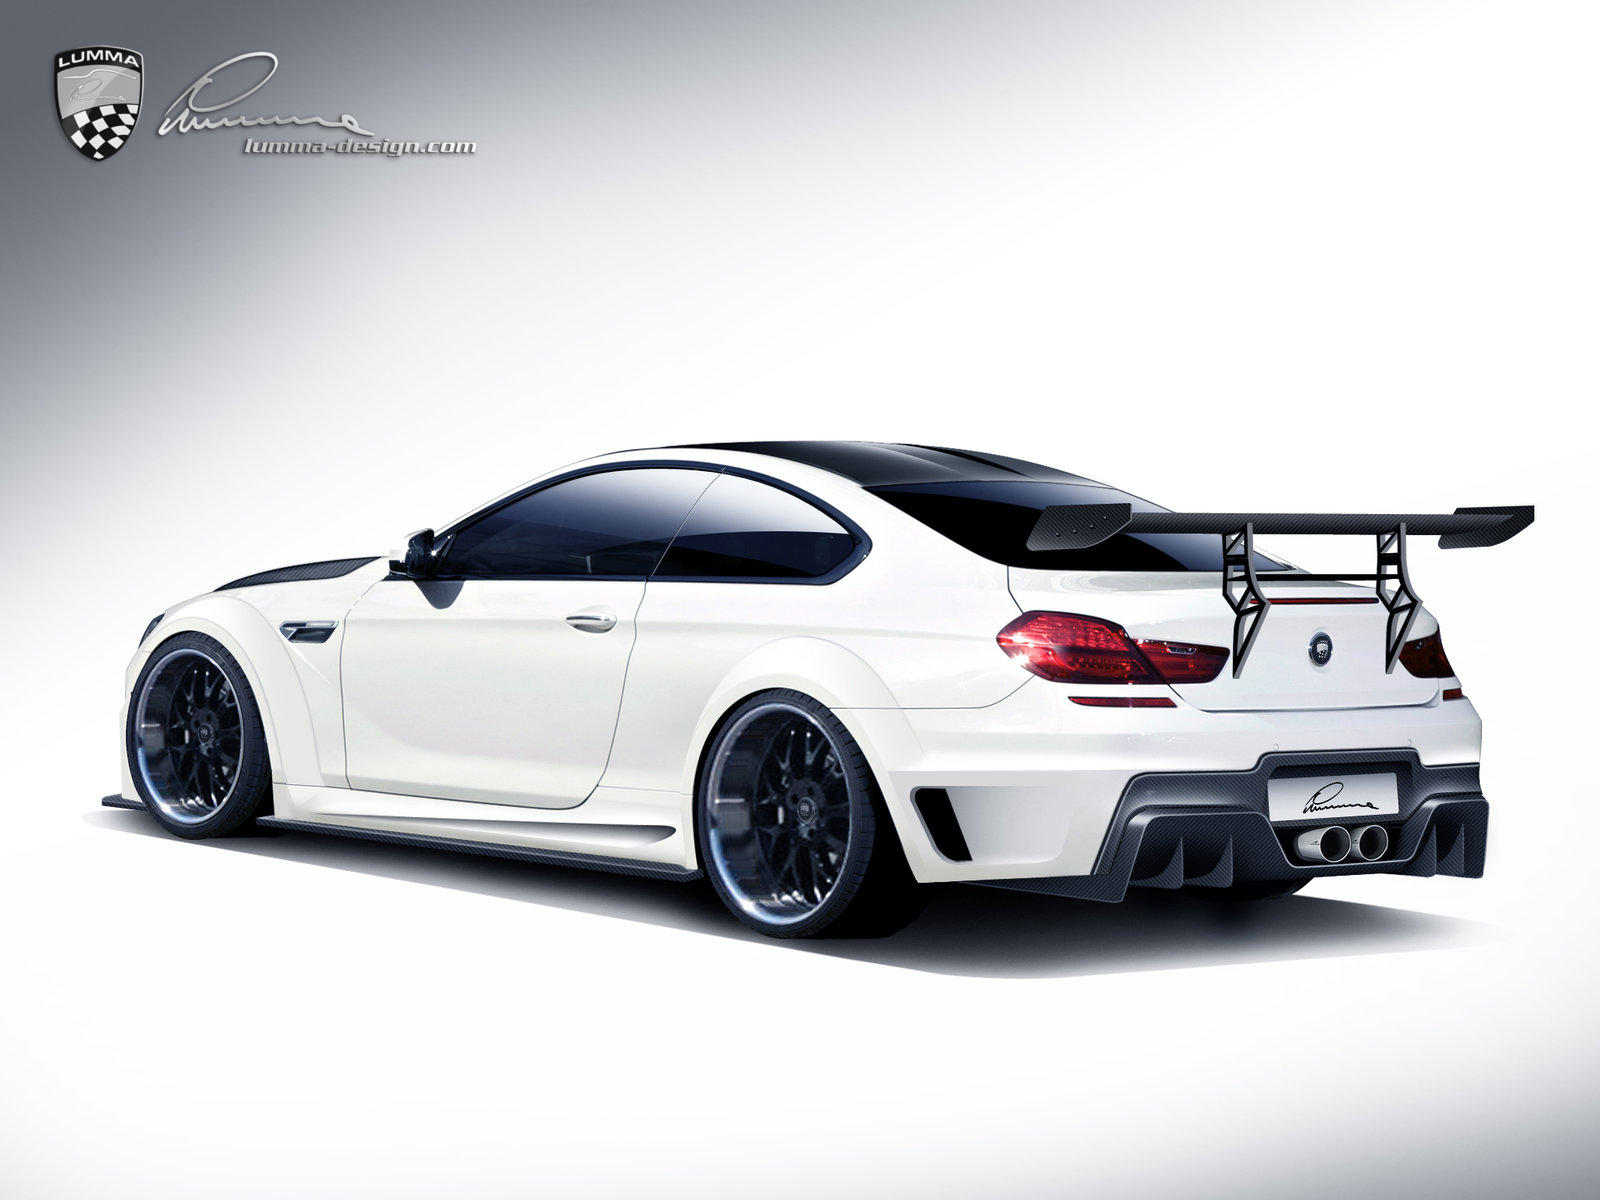 lumma clr 6 m bmw m6 f13 according to lumma design. Black Bedroom Furniture Sets. Home Design Ideas